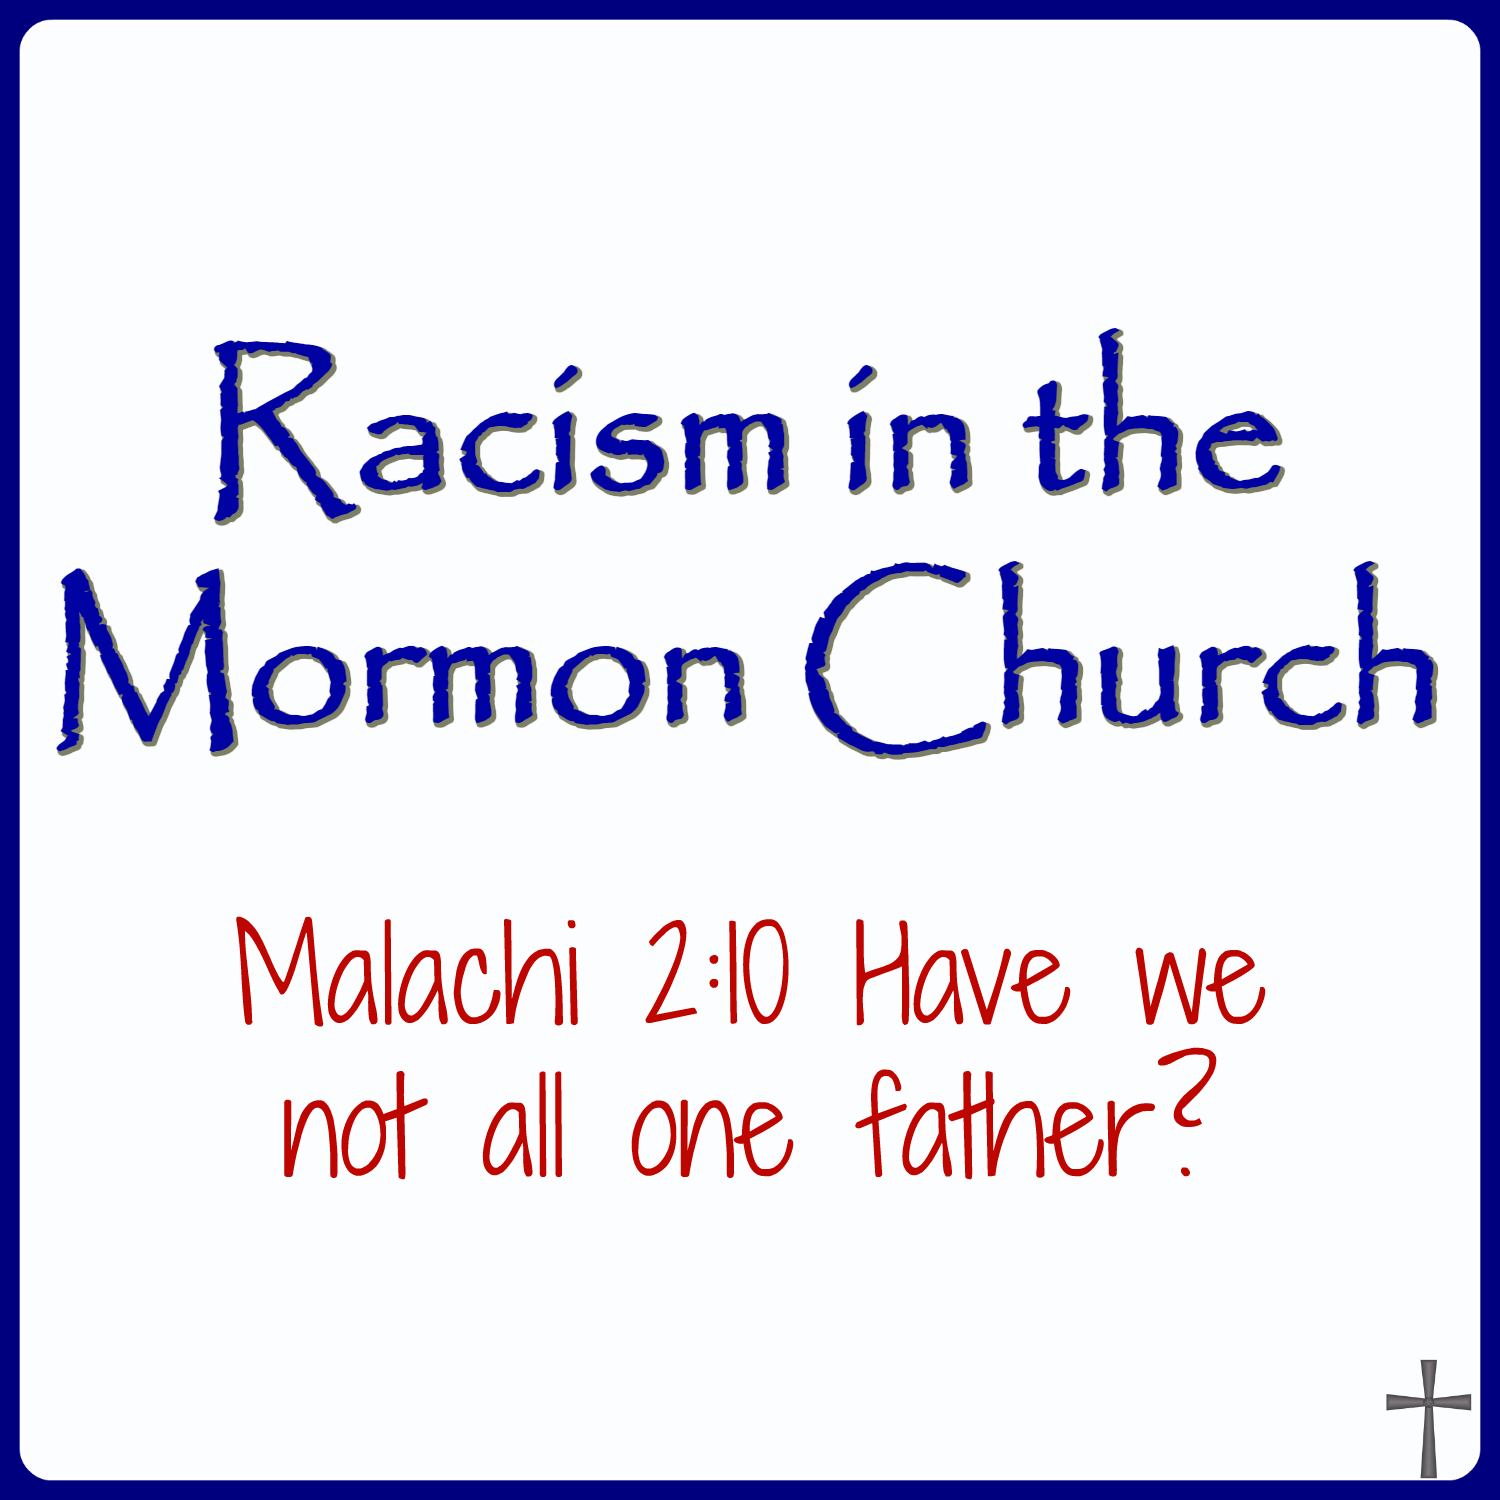 church teachings on racism The church identifies racism as a commitment of sin that divides the family of the human race and obliterates the image and likeness of god it is also deemed to violate human dignity, which is a fundamental principle of the catholic social teachings whereby every individual must respect their inherent value and worth as outlined in genesis 1:26-27.